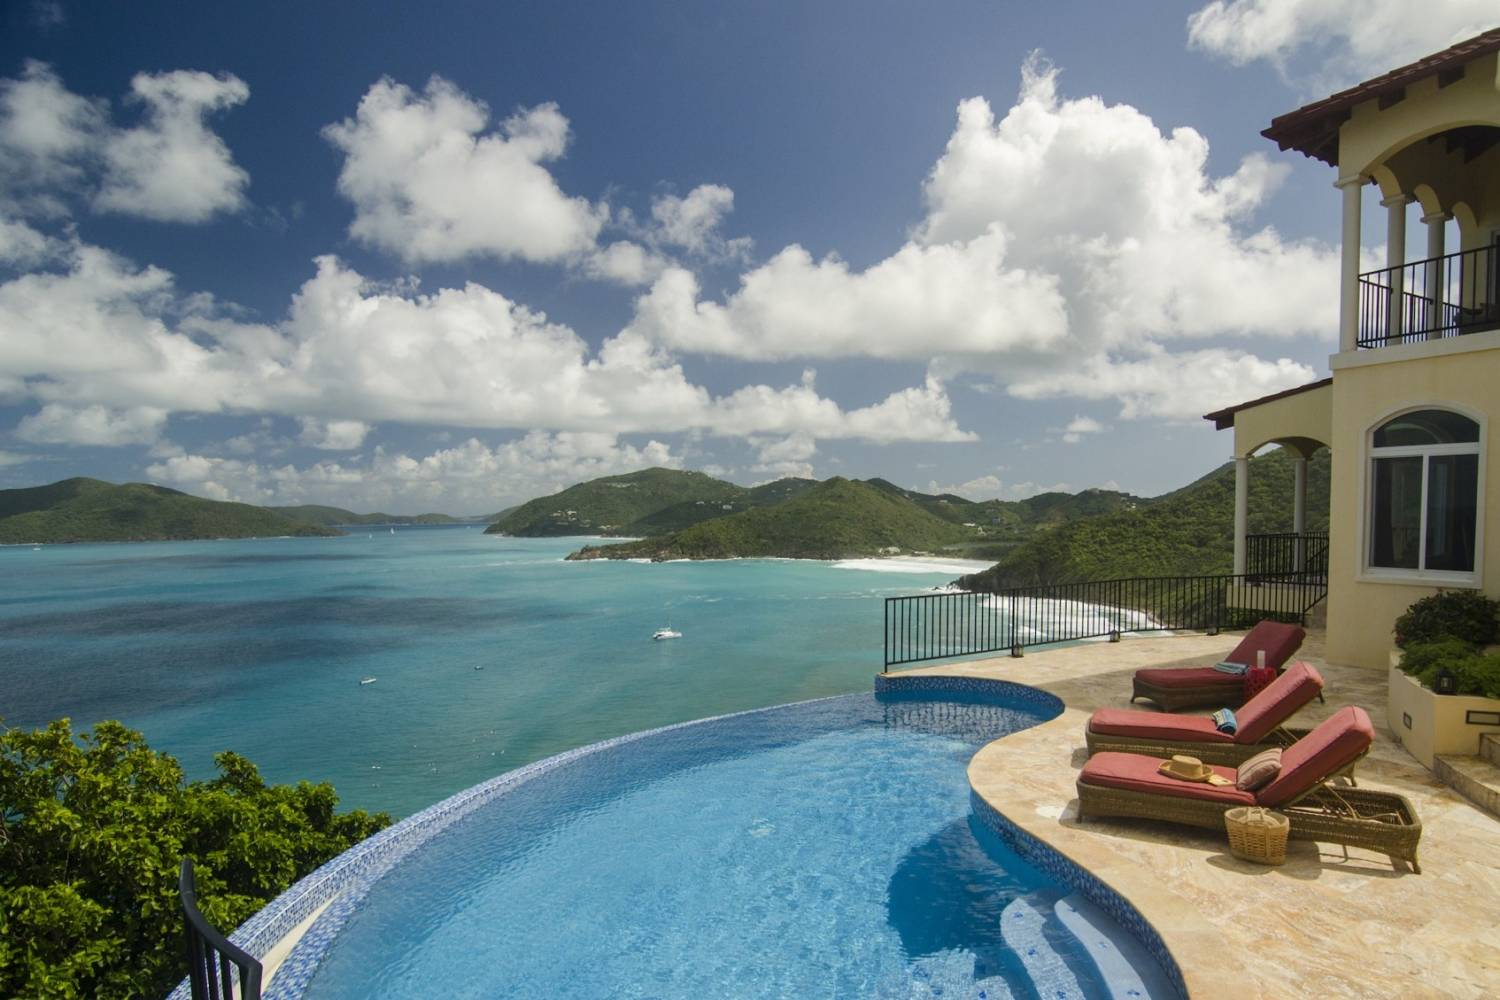 What's better than going to a restaurant? Having a restaurant come to you. Book a Private Chef in Smuggler's Cove, Tortola, British Virgin Islands and enjoy!, header